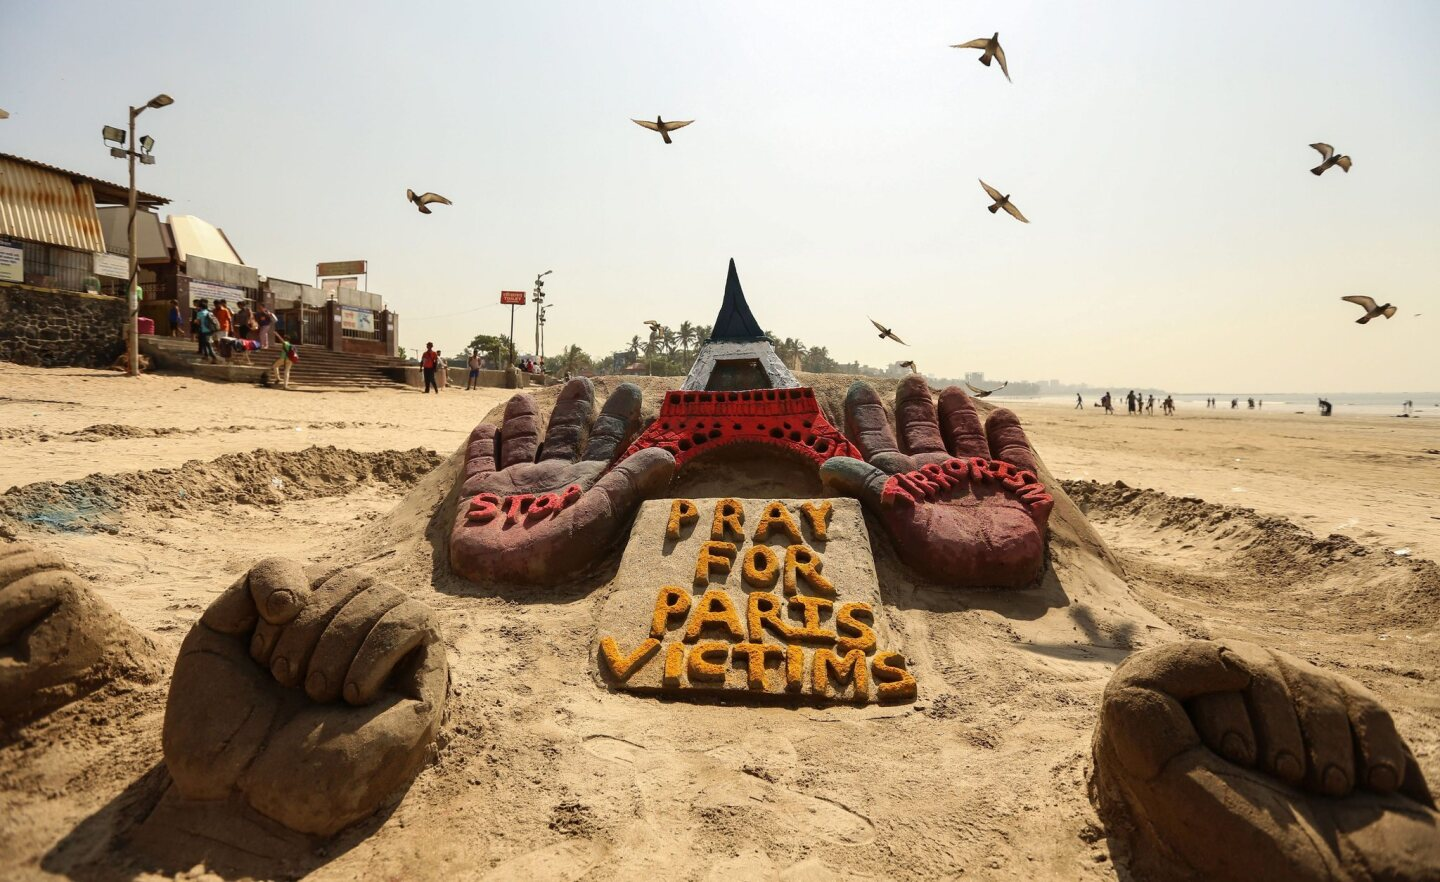 Pigeons fly over a sand sculpture paying tribute to the victims of the Paris terrorist attacks in Mumbai, India, on Nov. 20, 2015.